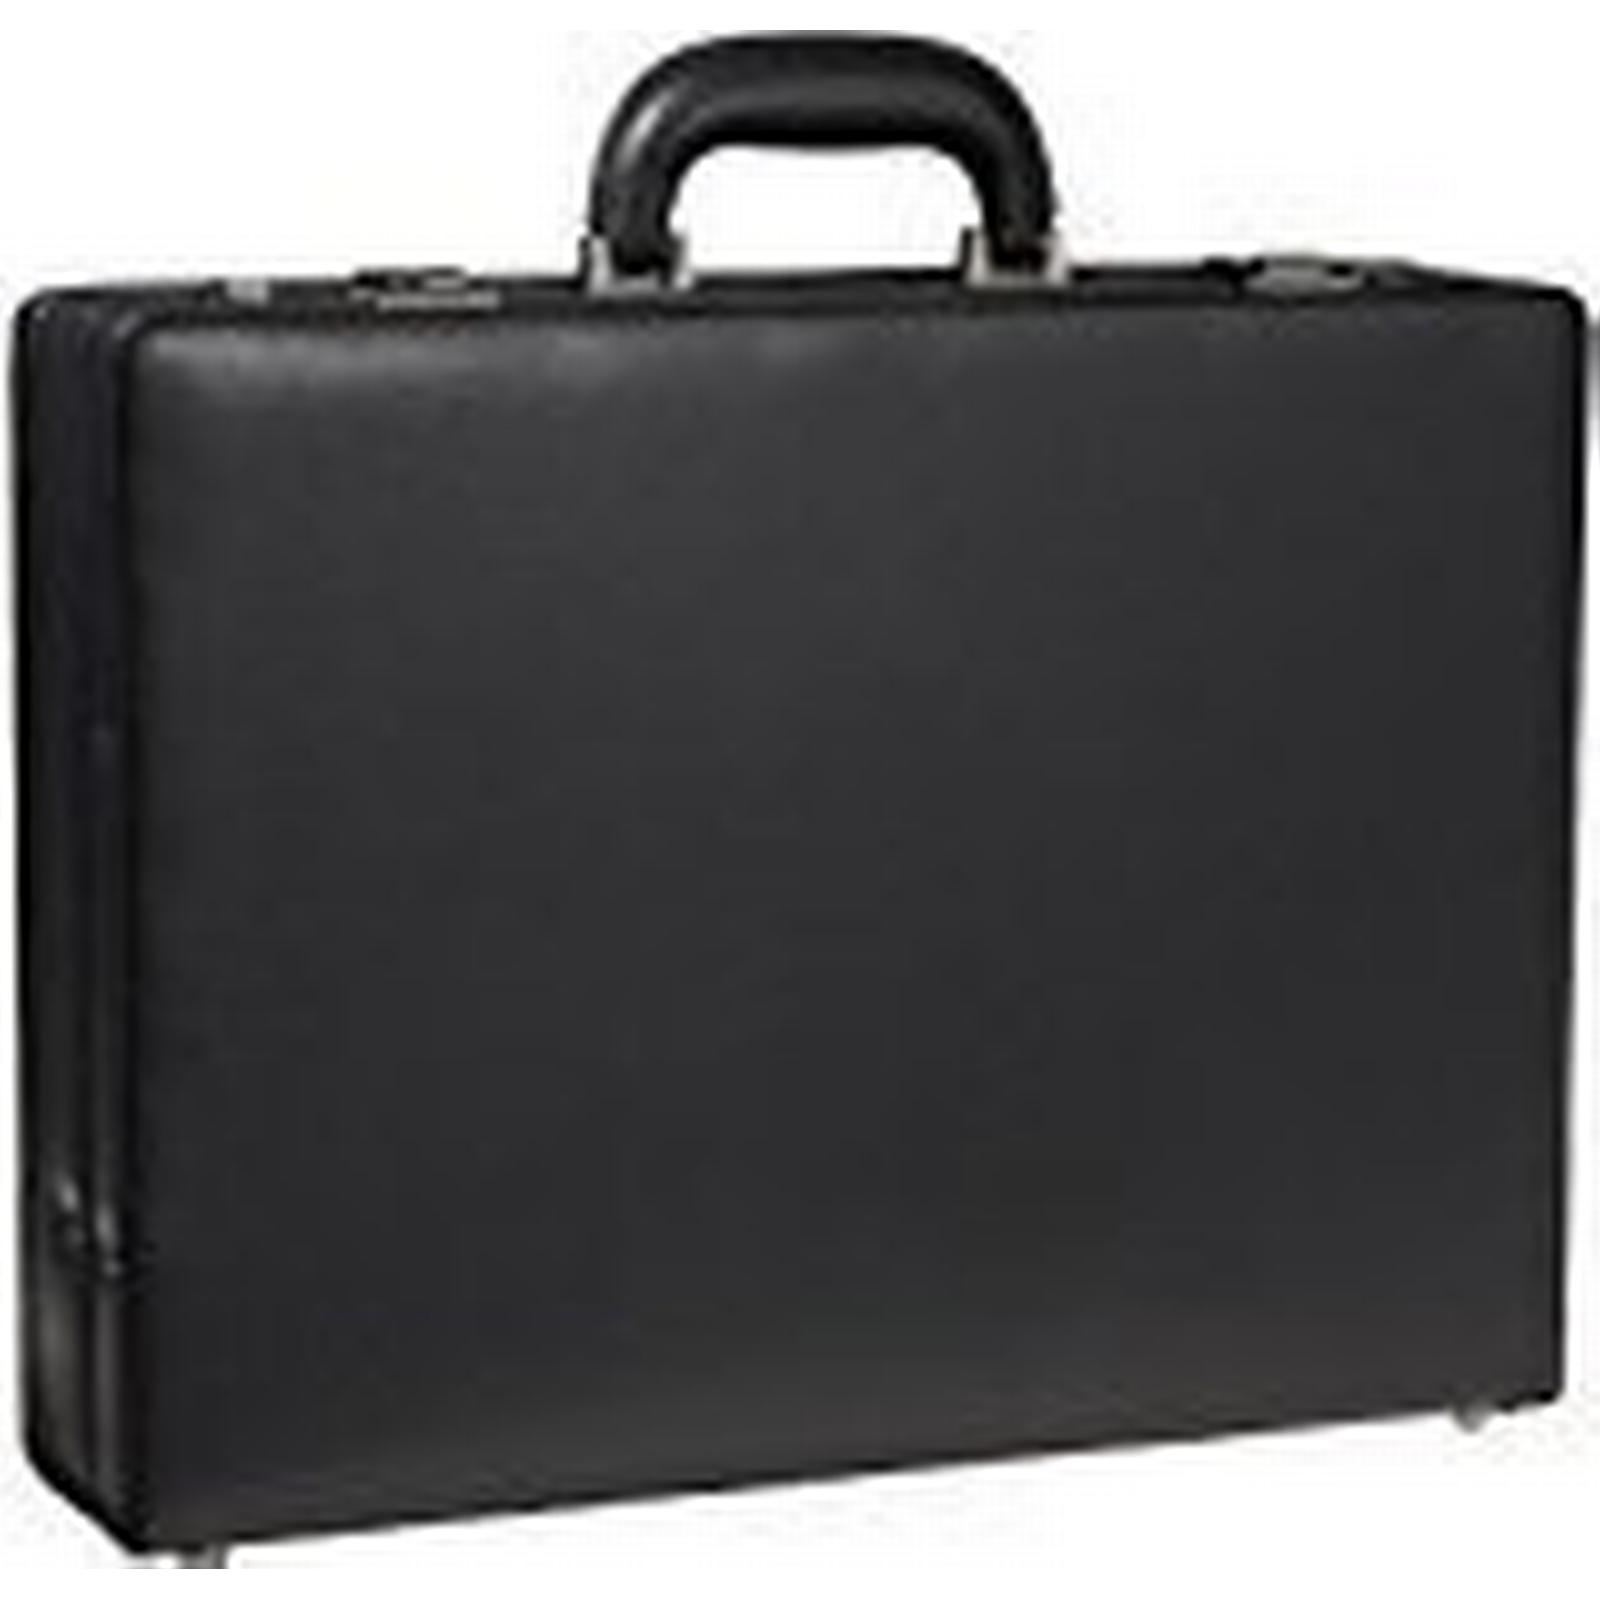 Leonhard Heyden Unisex Adult Lh4328 Pu Lh4328-001 Attache Case Attache Black Lh4328-001 Pu 24caec